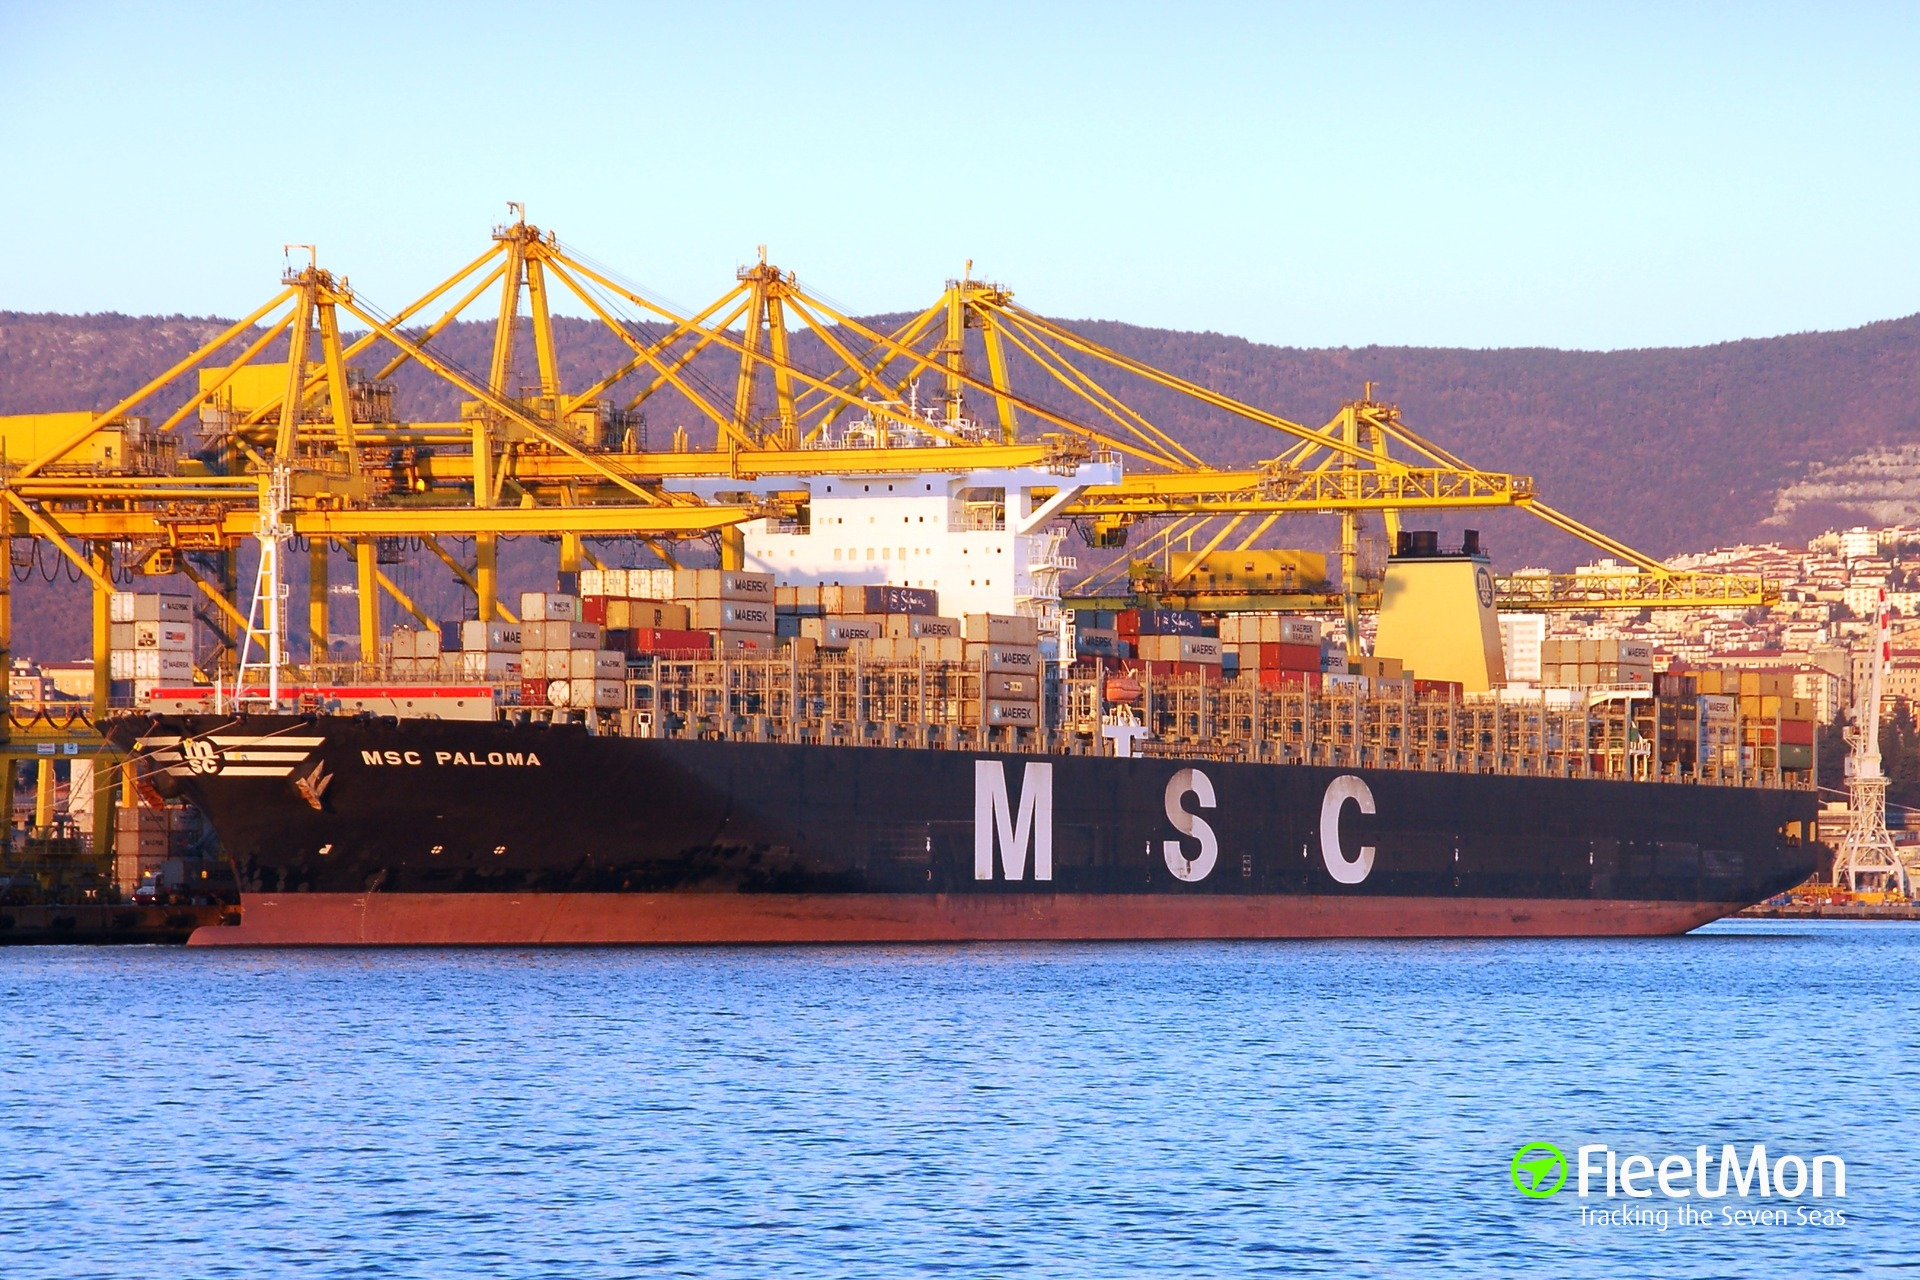 MSC PALOMA in Trieste